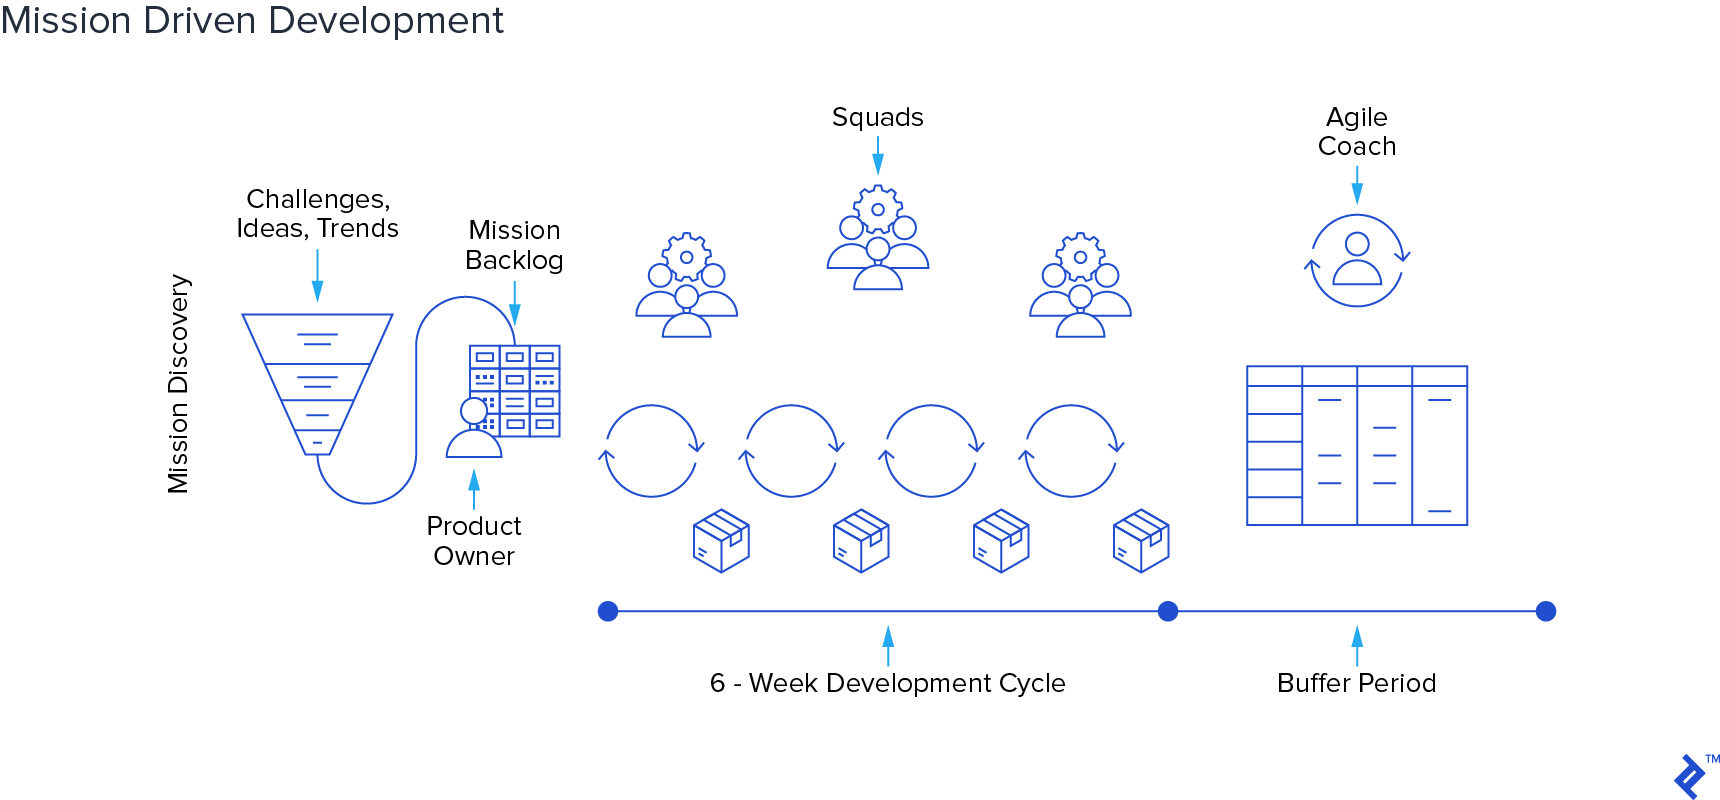 Core elements of the Mission Driven Development framework